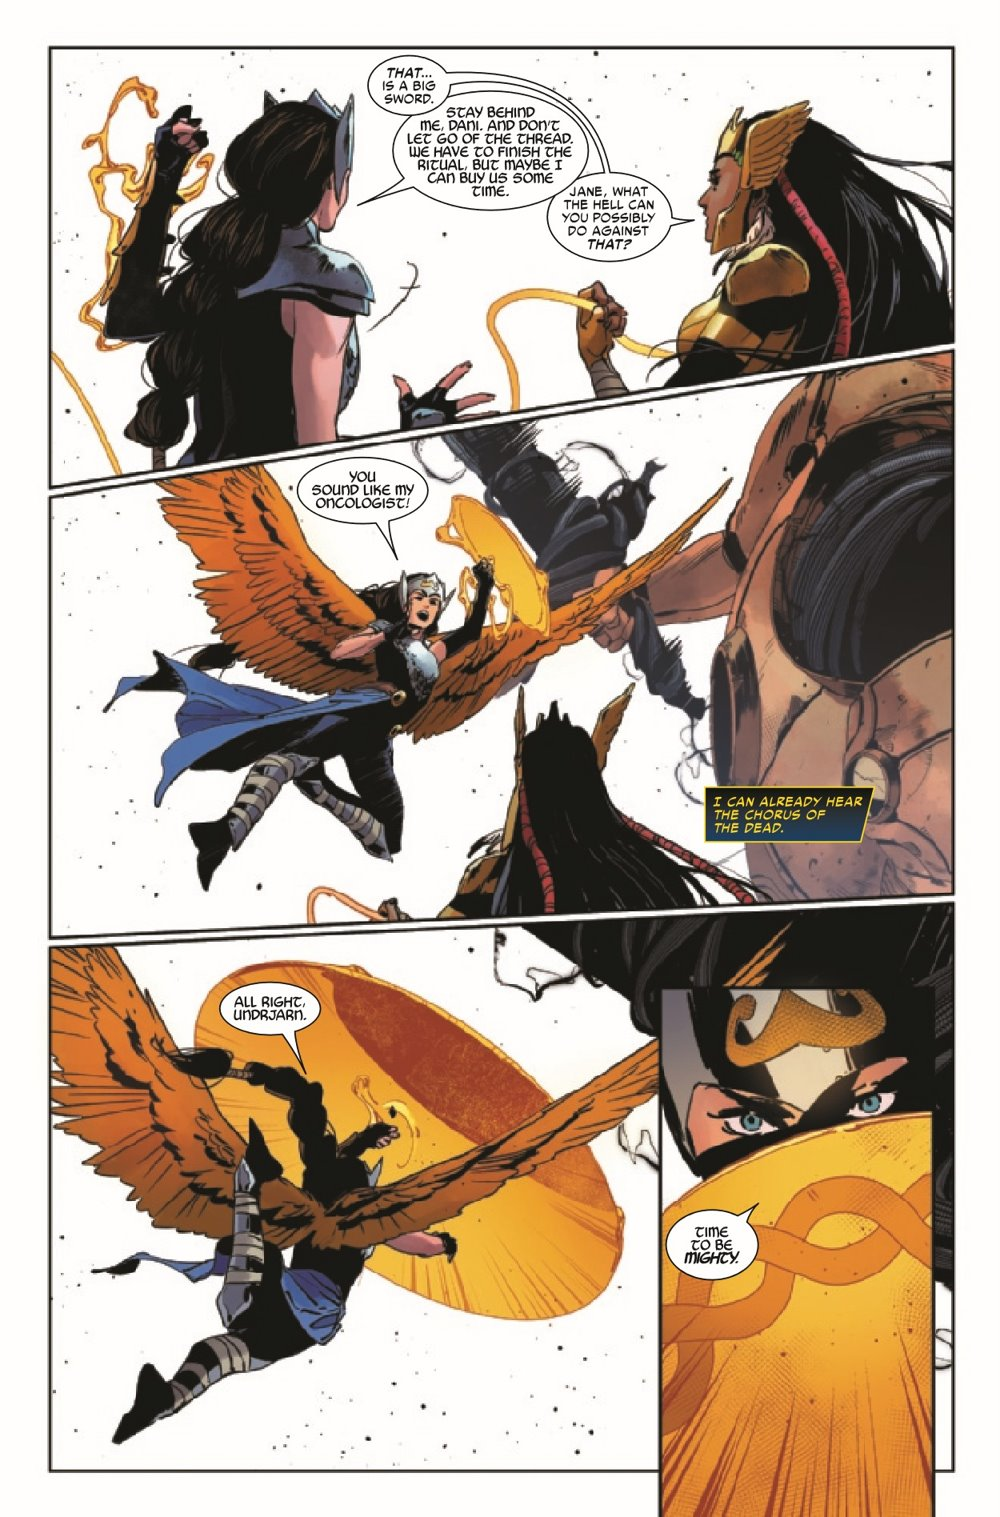 KIBVALKYRIESRET2021004_Preview-3 ComicList Previews: KING IN BLACK RETURN OF THE VALKYRIES #4 (OF 4)